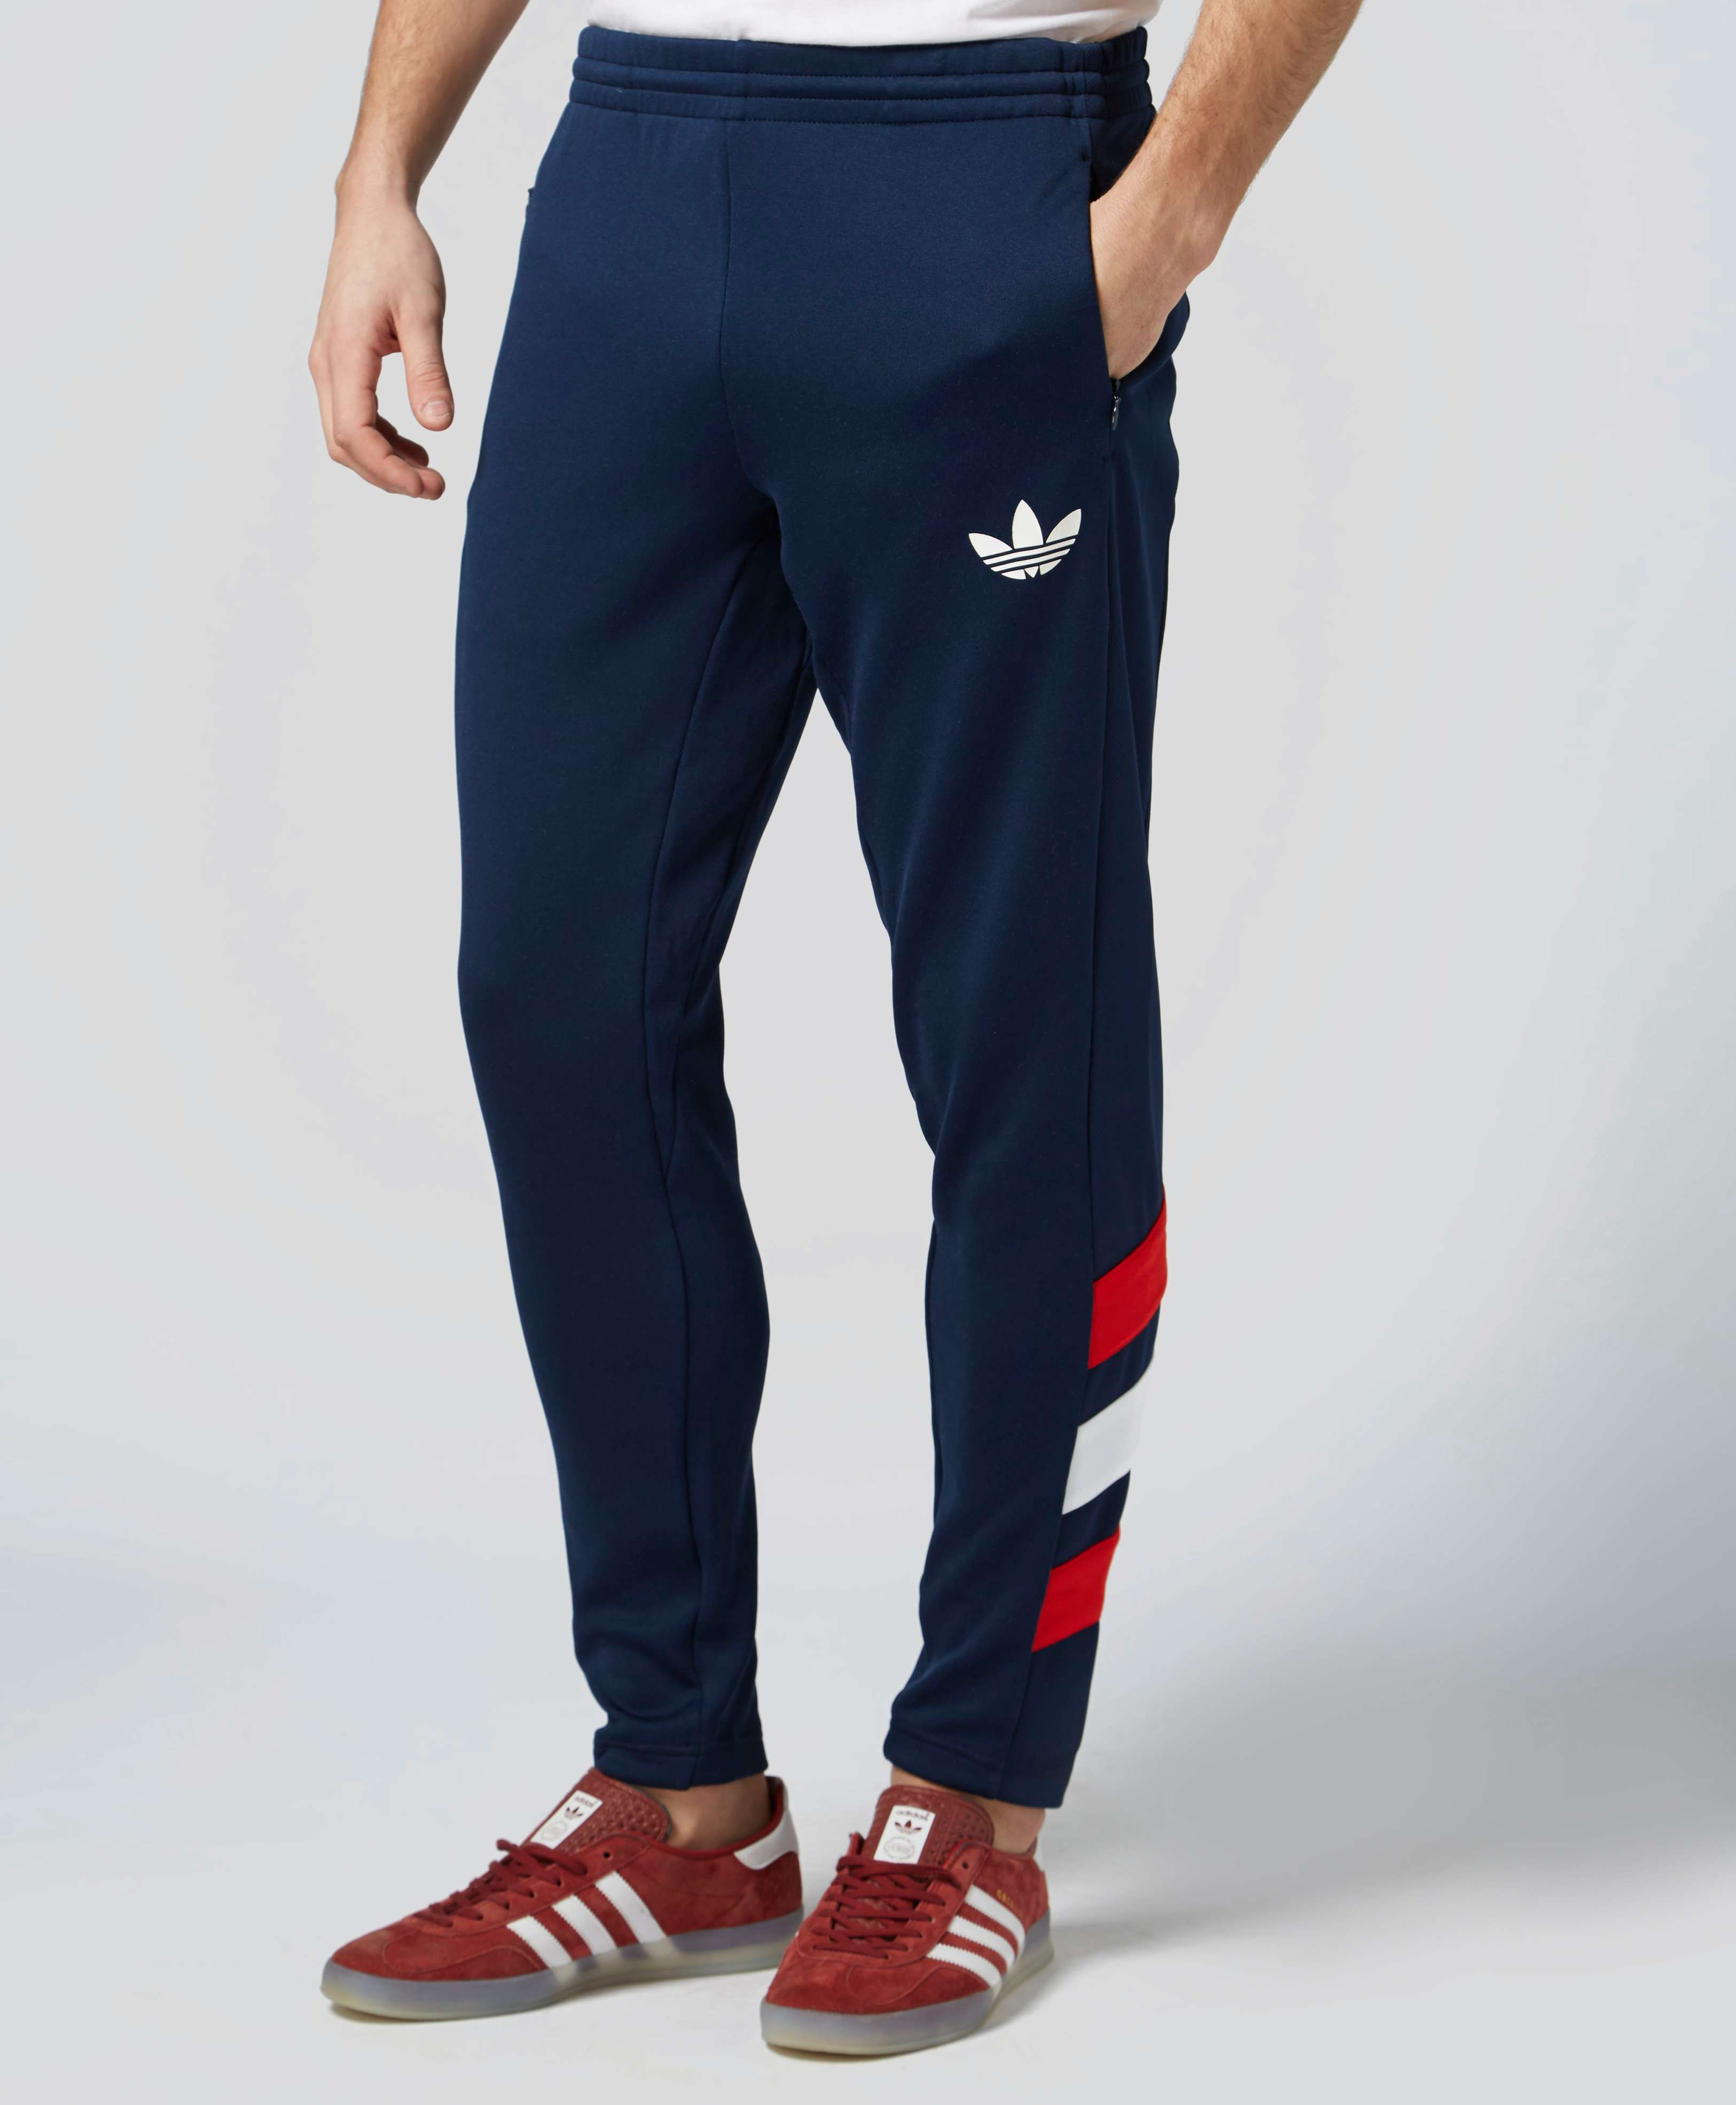 half off 6d15a 88872 adidas Originals Slim Retro Track Pants - The Brand Authority, scotts  Menswear, brings you the latest clothing, footwear and accessories from top  menswear ...